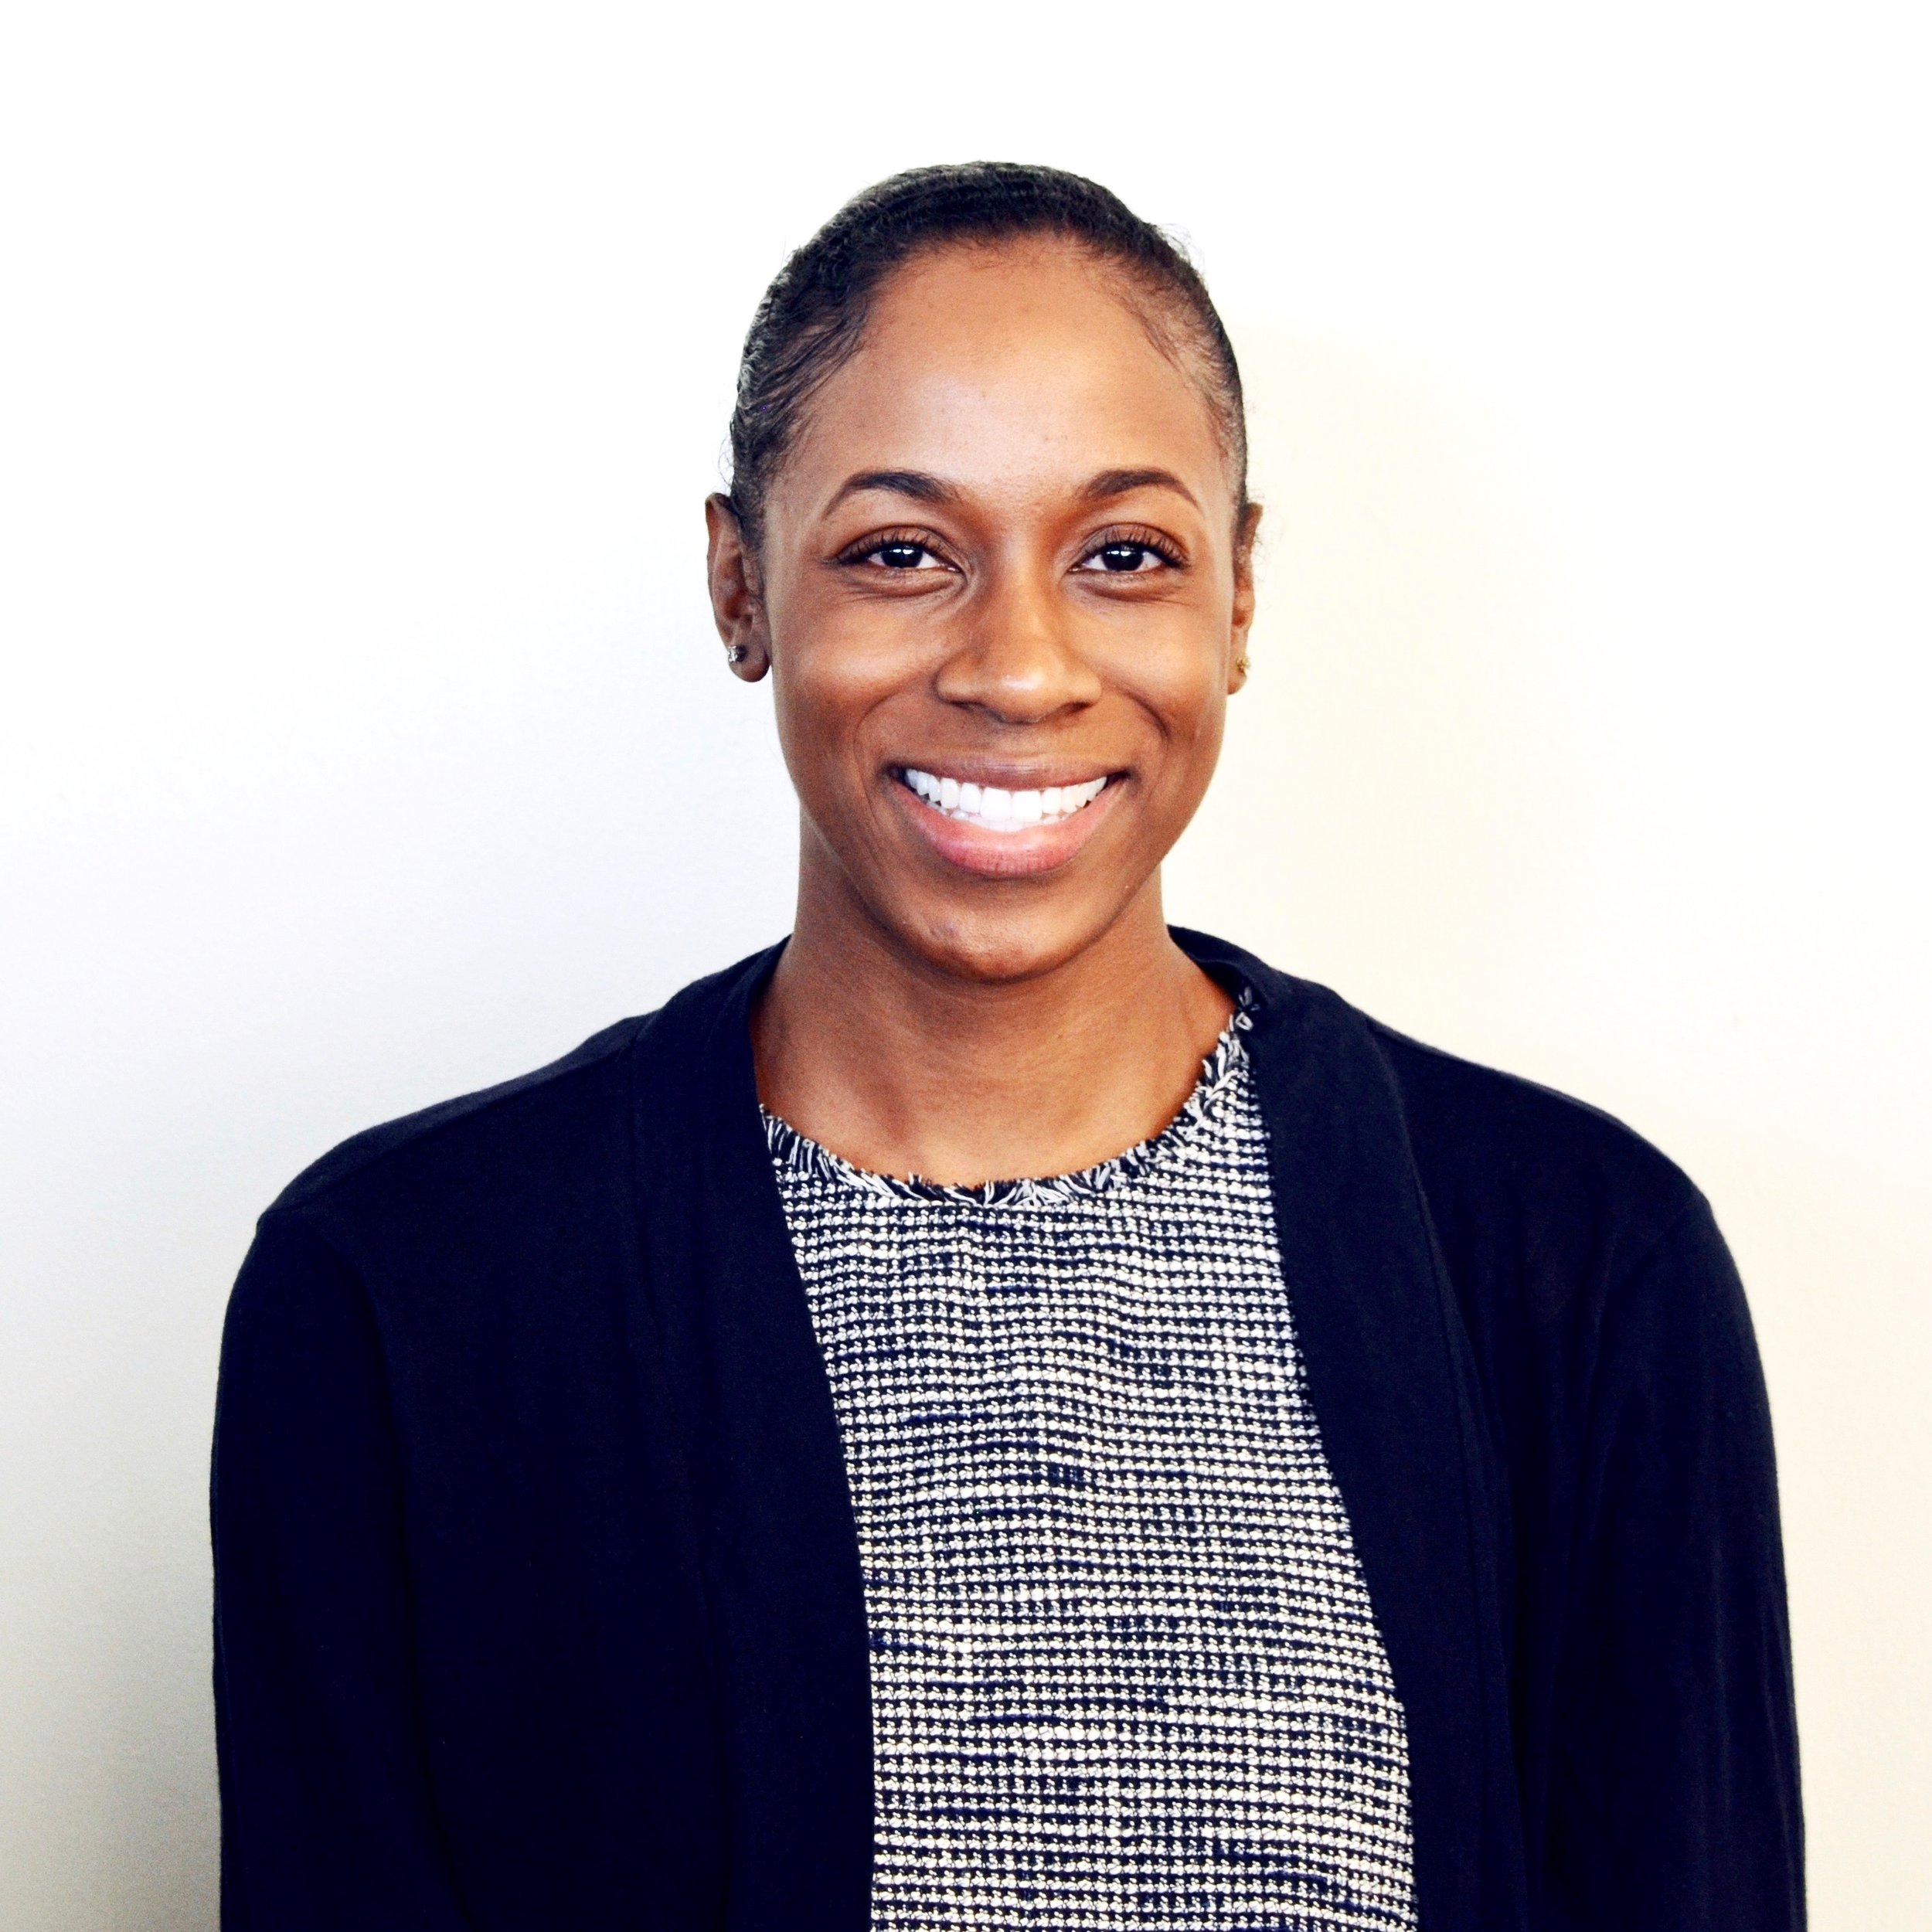 Carissa Levingston, Development Manager, United to Learn